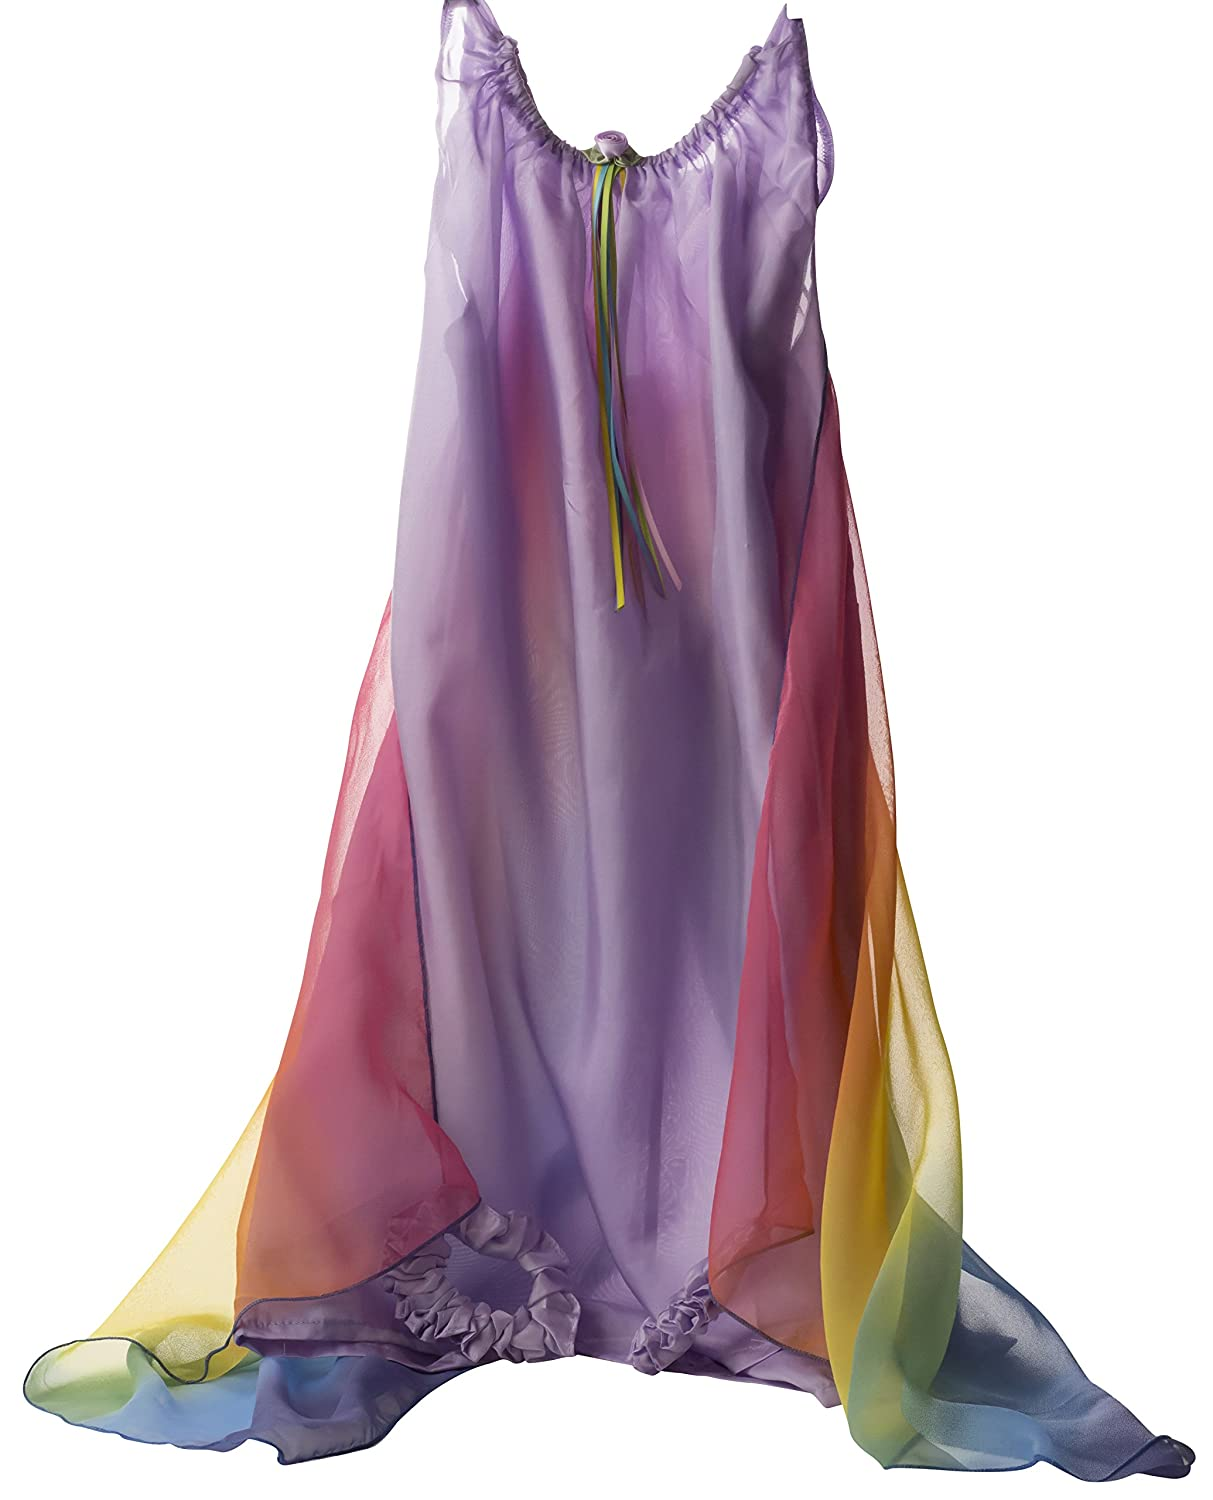 5327d8d9c42f5 Amazon.com  Sarah s Silks Fairy Dress in Lavender with Rainbow Wings  Toys    Games